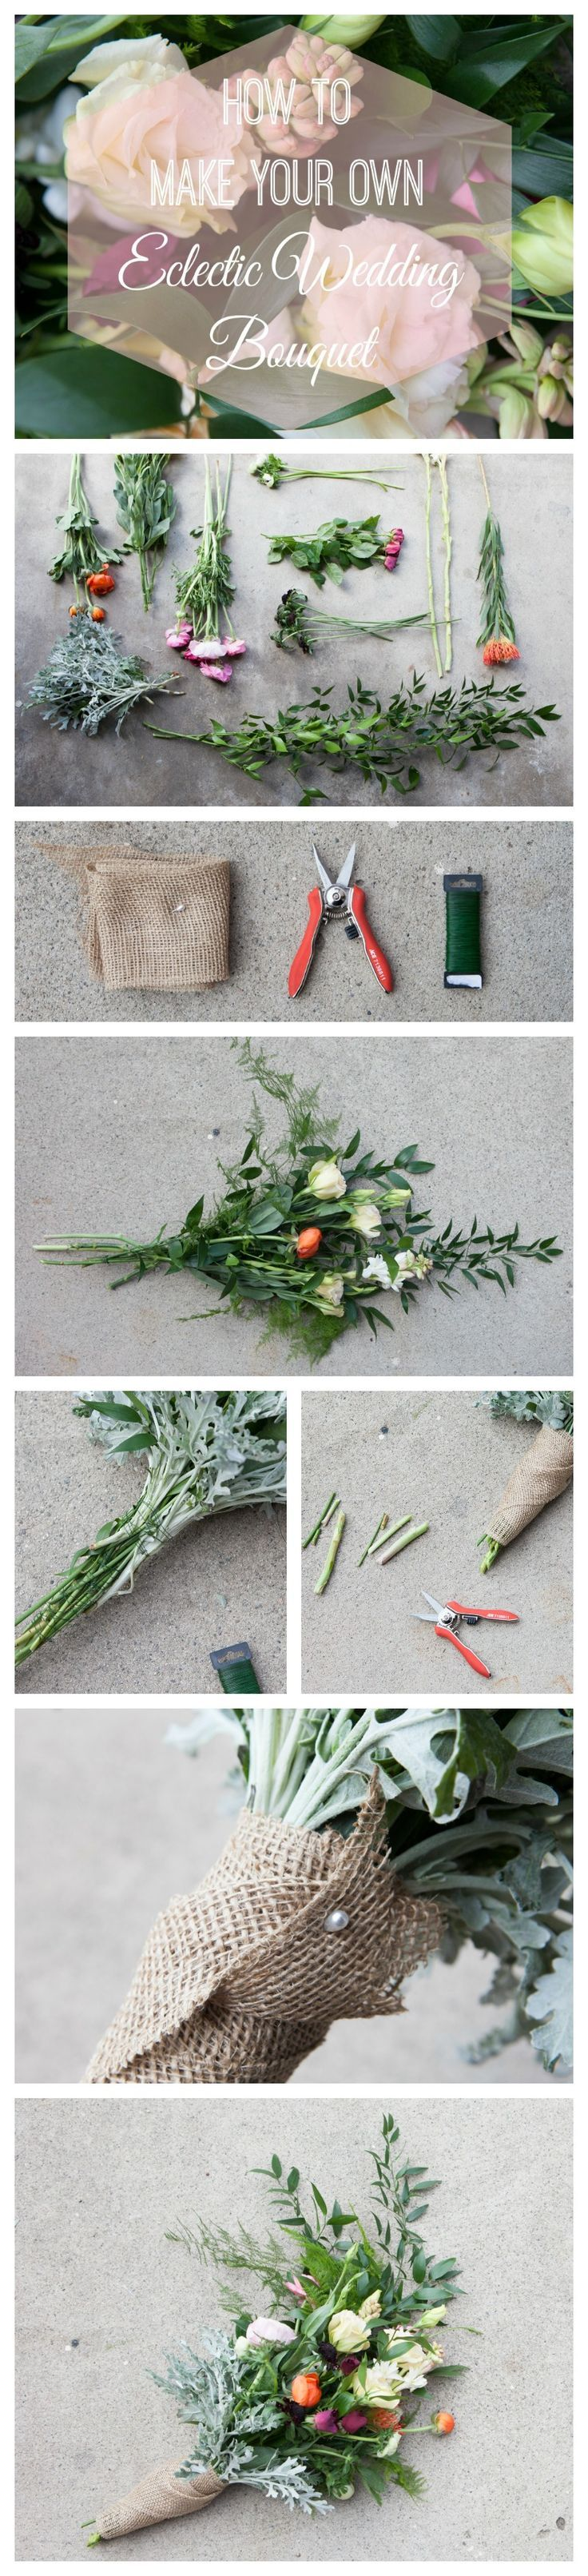 Step By Step : Make Your Own Wedding Bouquet